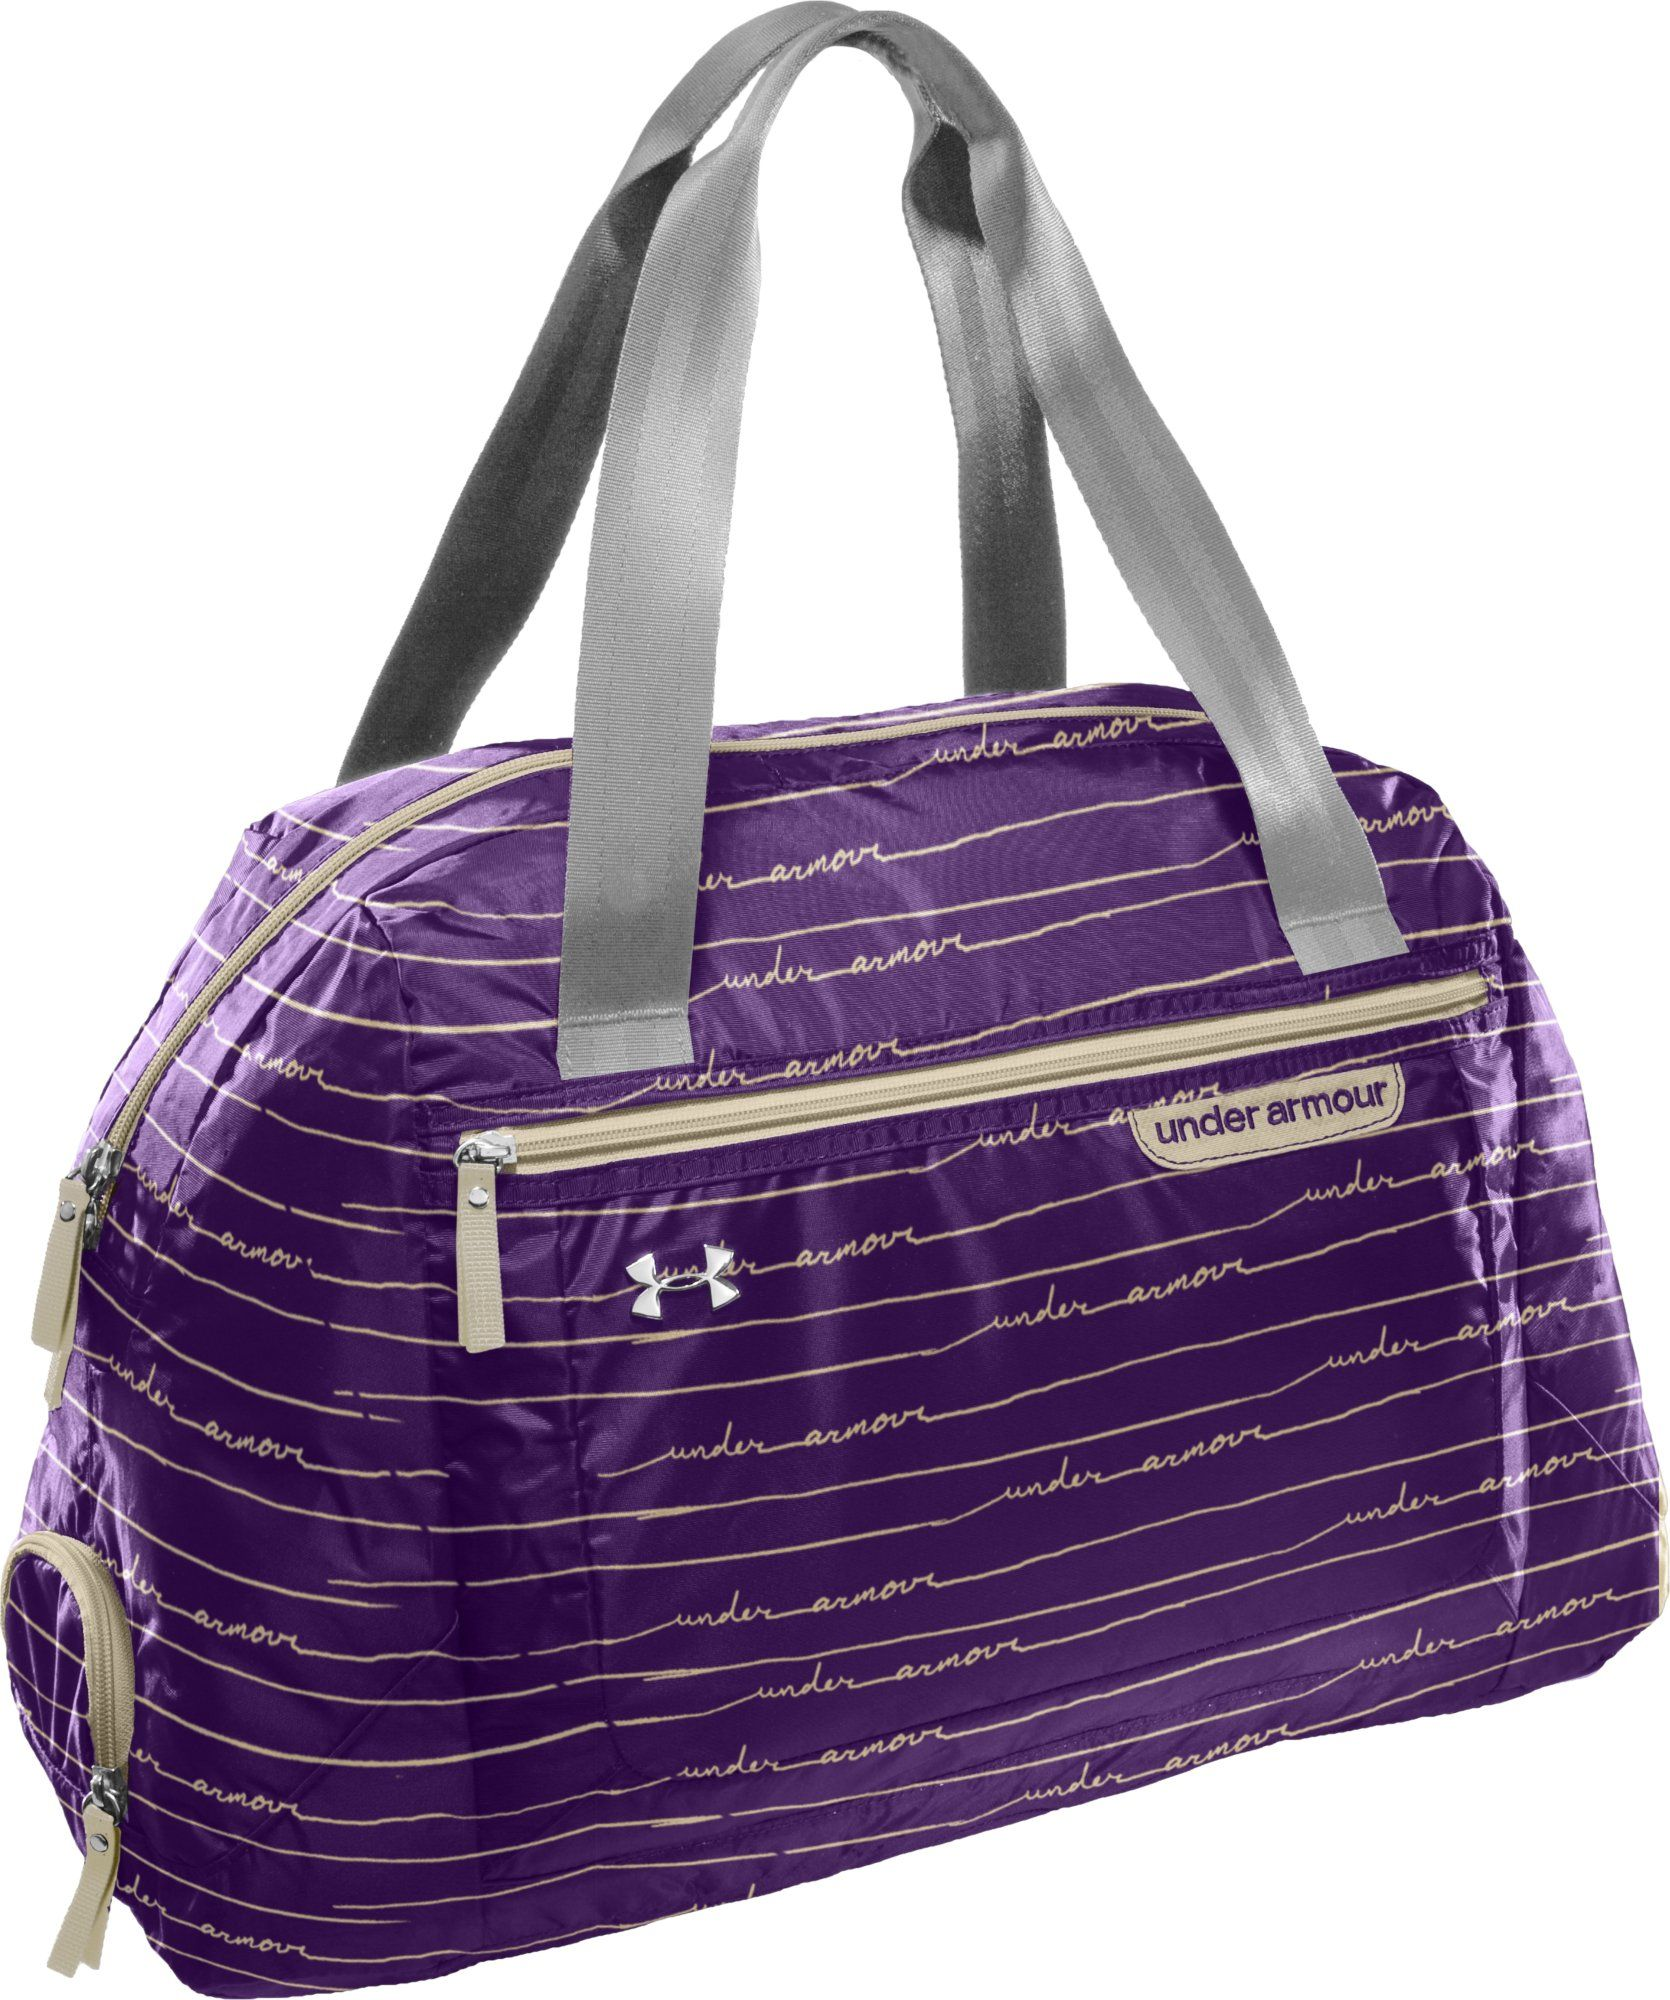 ee64a14fb1 Under Armour Women s Endure Gym Tote Bag